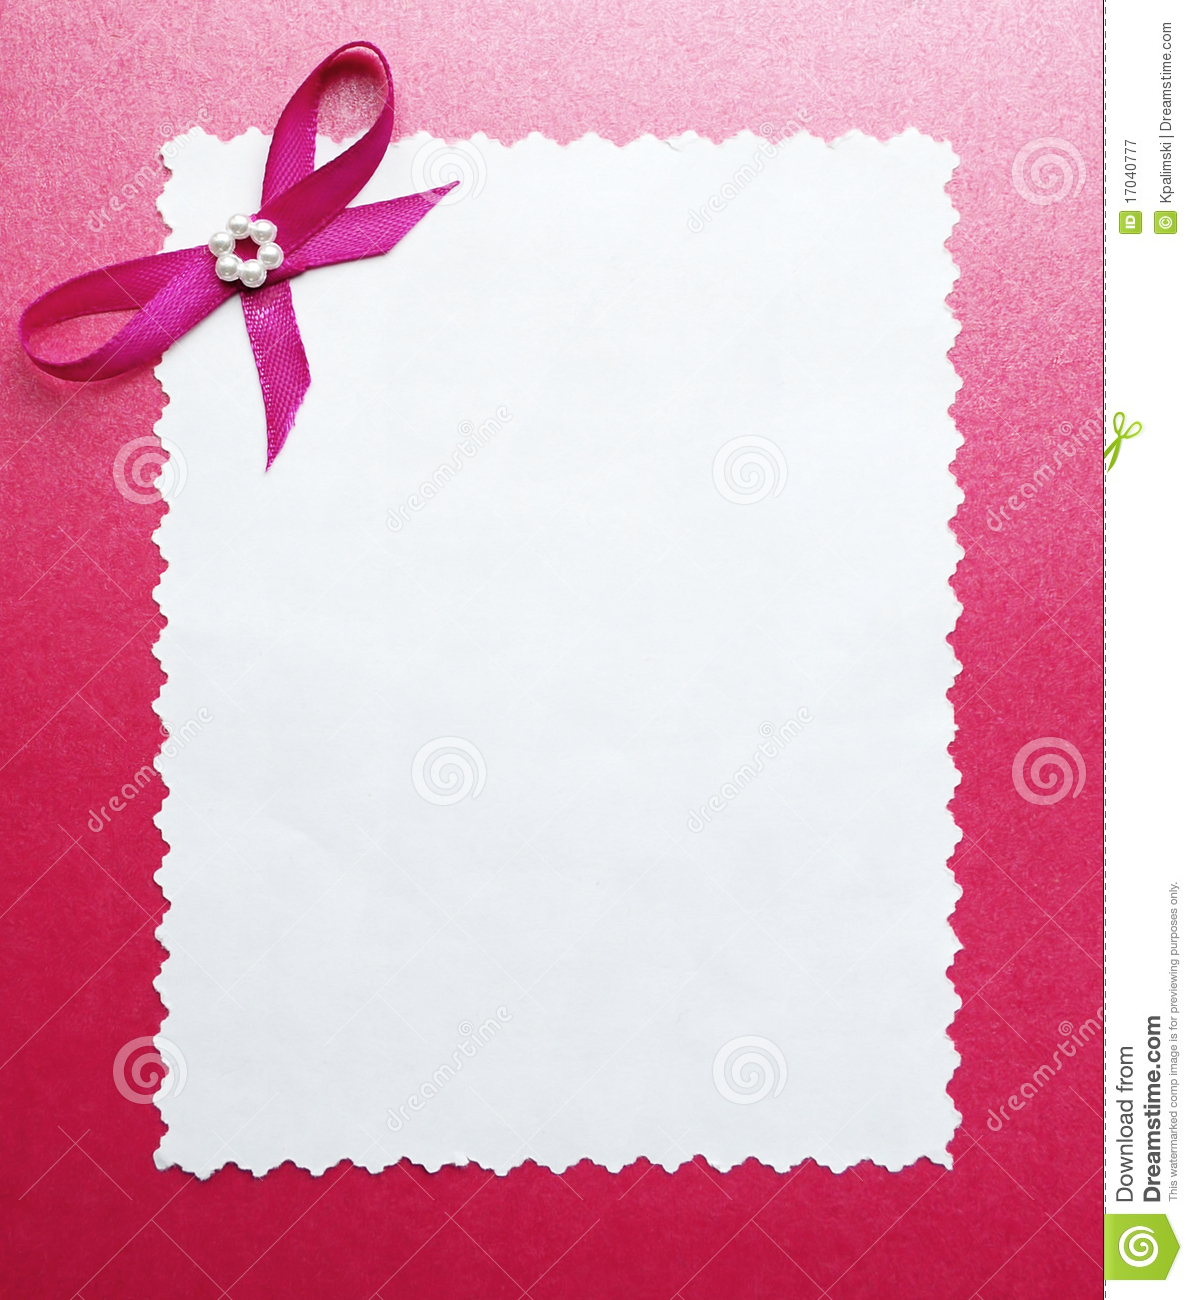 Wedding Paper Card Or Photo Frame Border Royalty Free Stock Photography - Image: 17040777